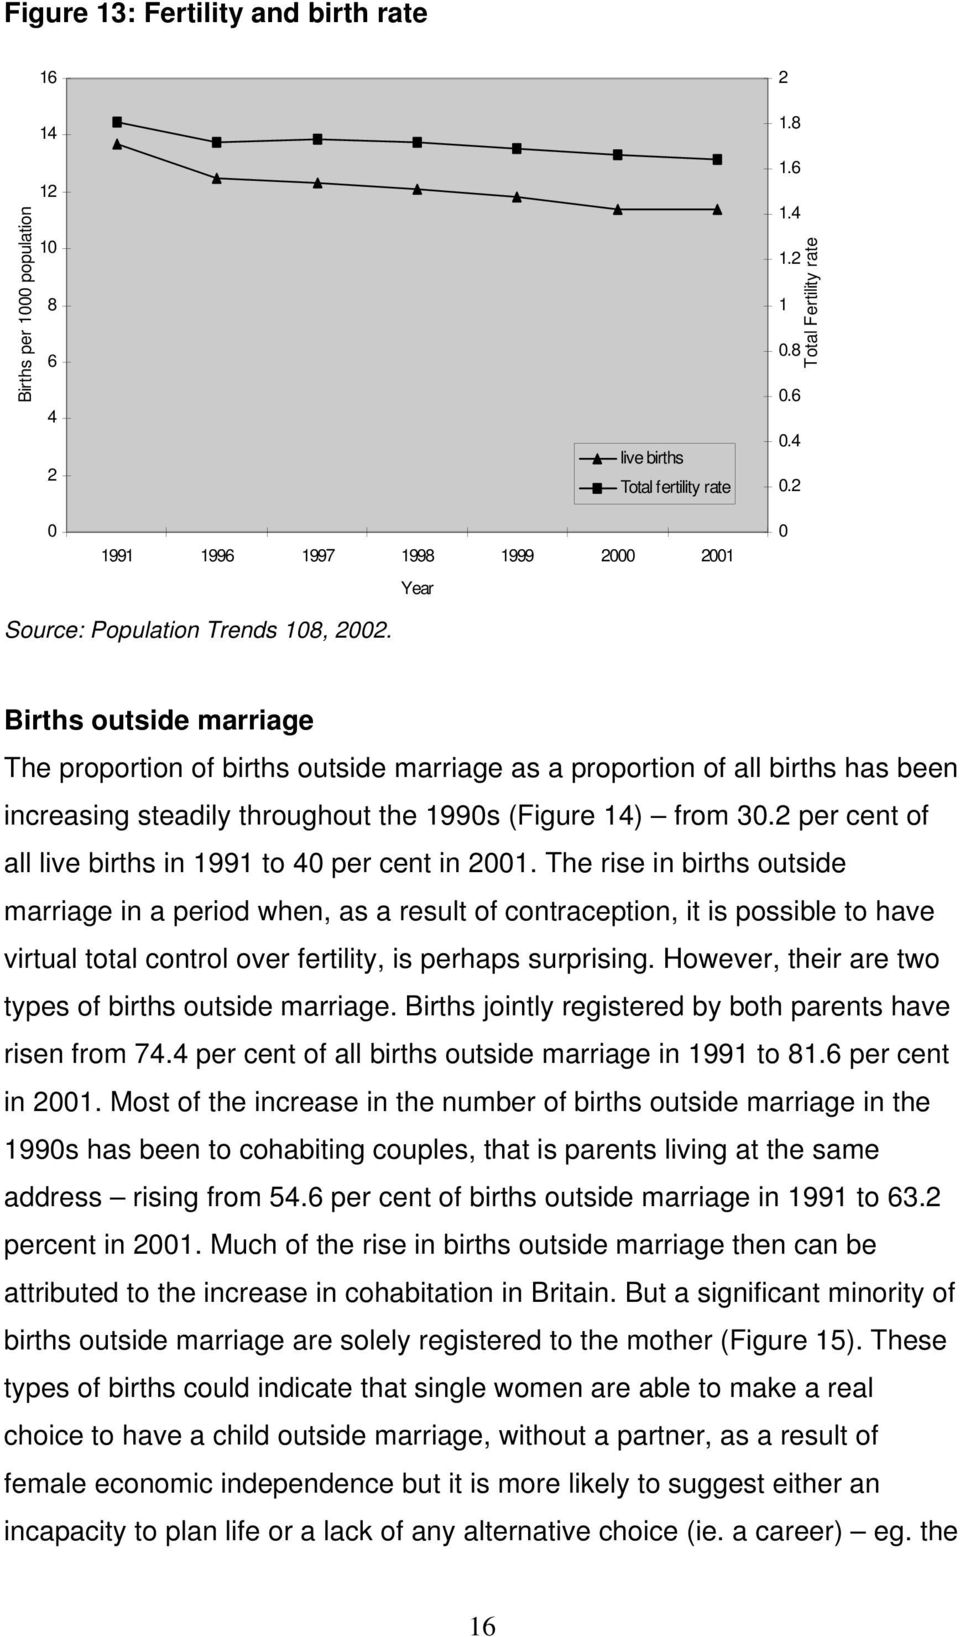 Births outside marriage The proportion of births outside marriage as a proportion of all births has been increasing steadily throughout the 1990s (Figure 14) from 30.